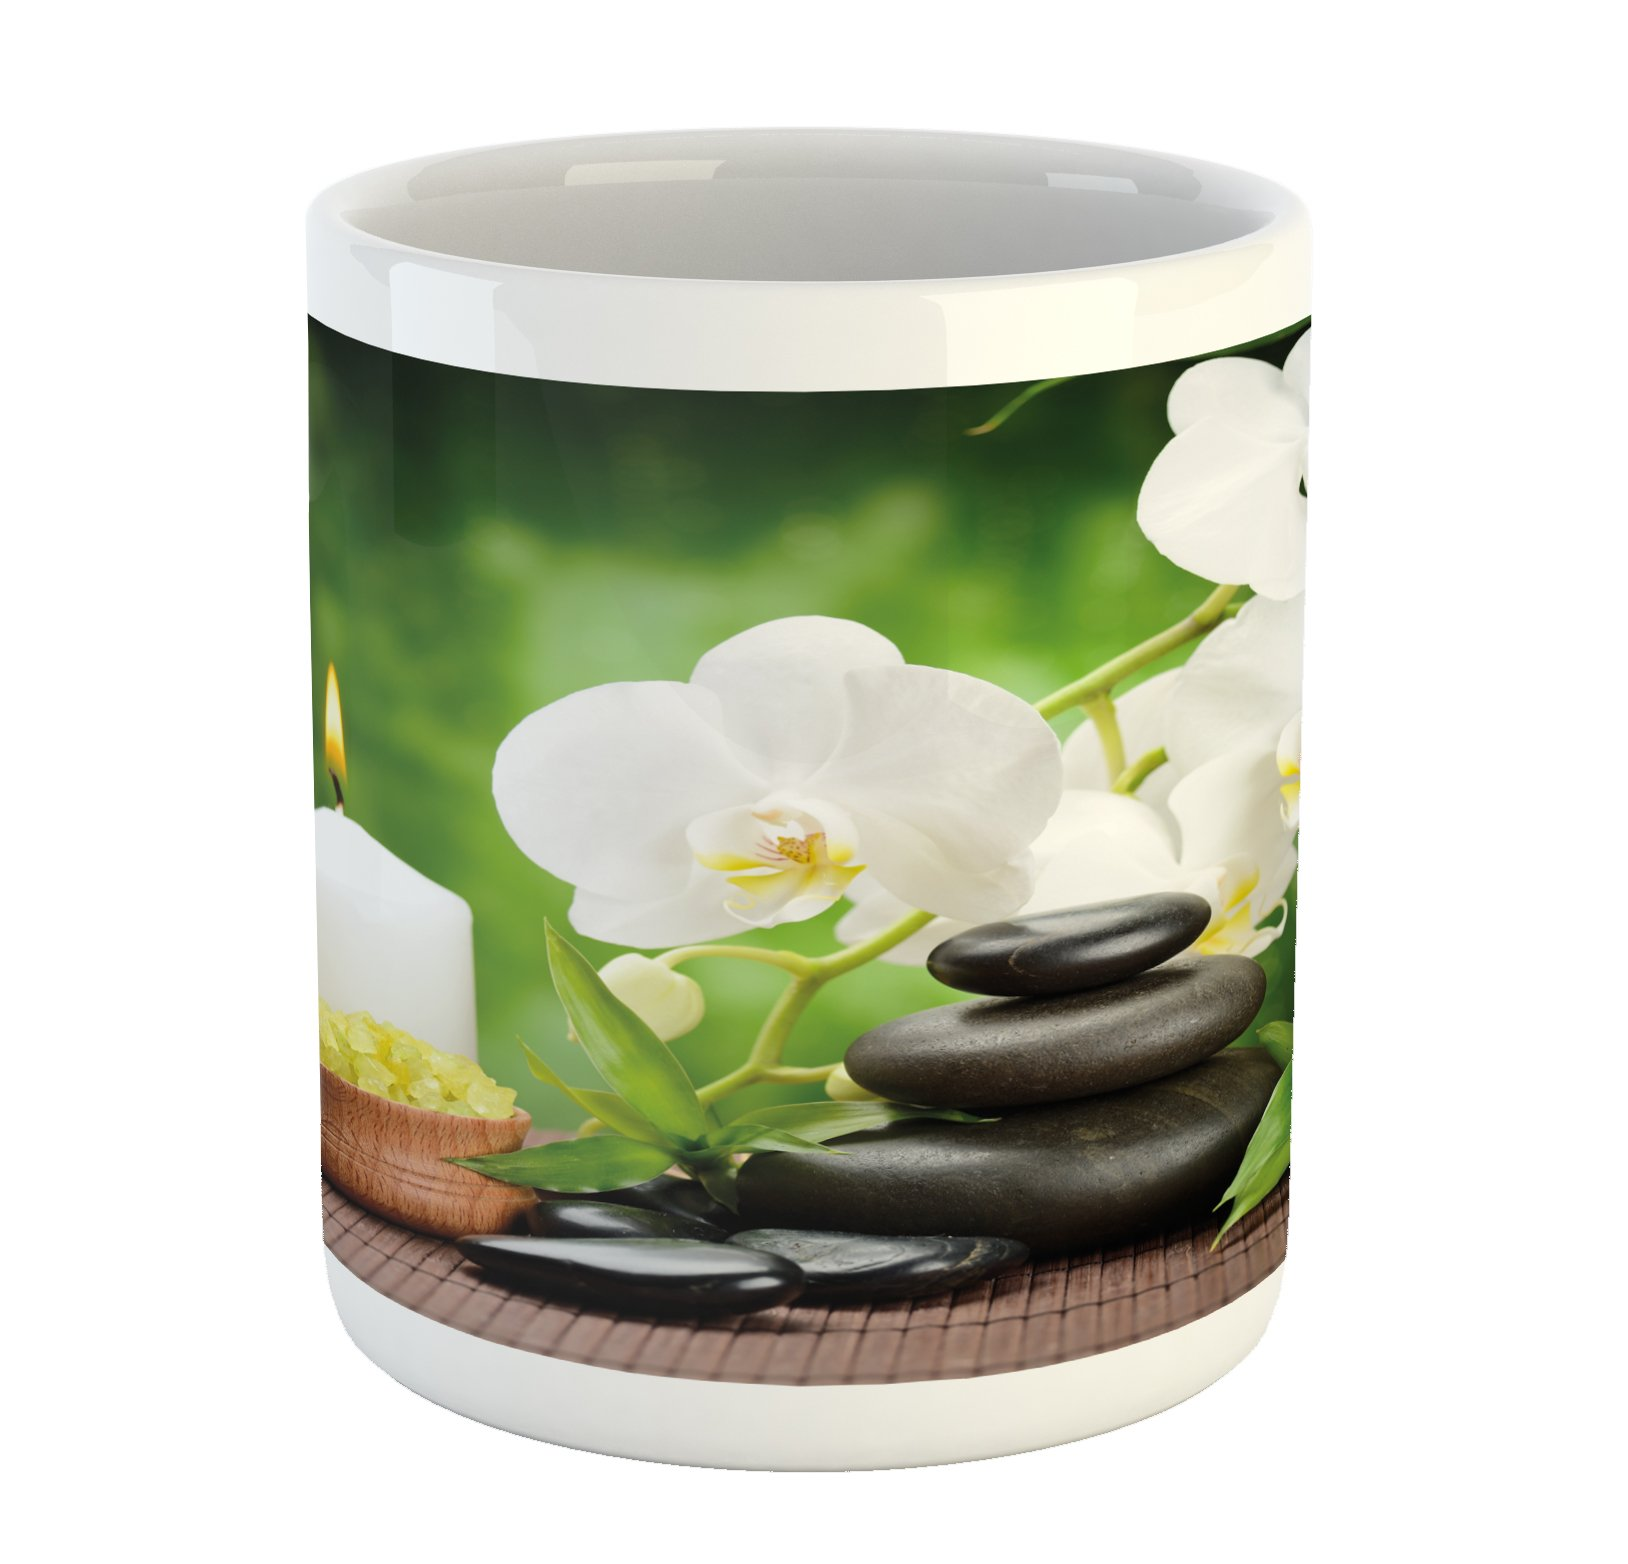 Ambesonne Spa Mug, Zen Stones with Orchid and Candles Green Plants at the Background Print, Printed Ceramic Coffee Mug Water Tea Drinks Cup, White Green and Black